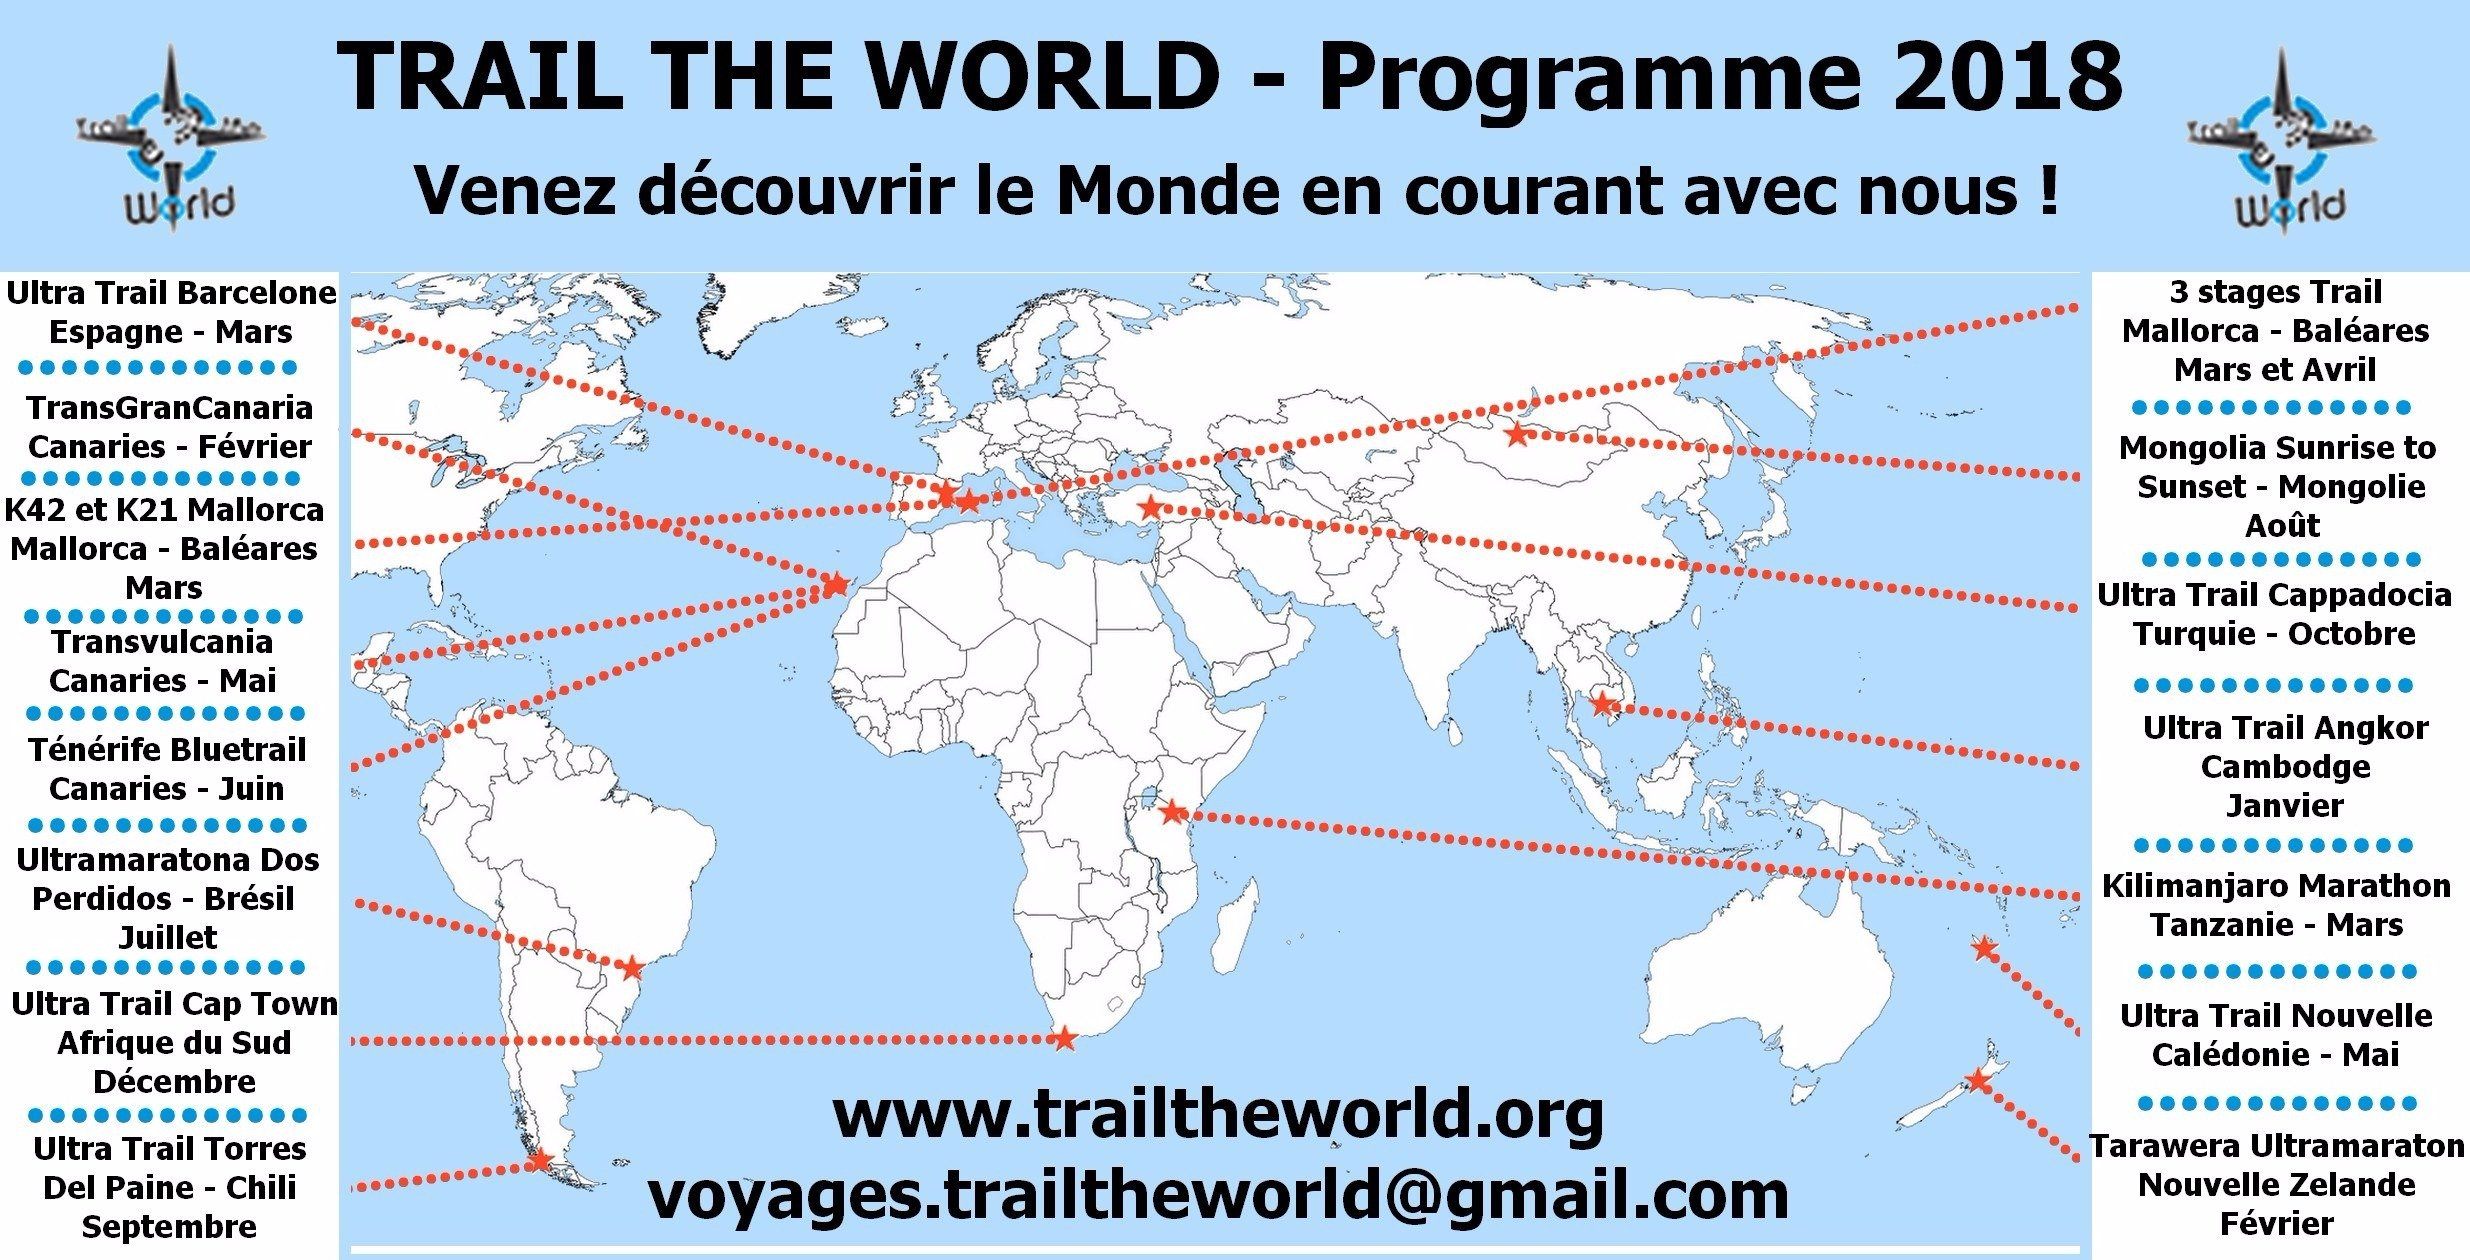 Programme 2018 - Trail The World